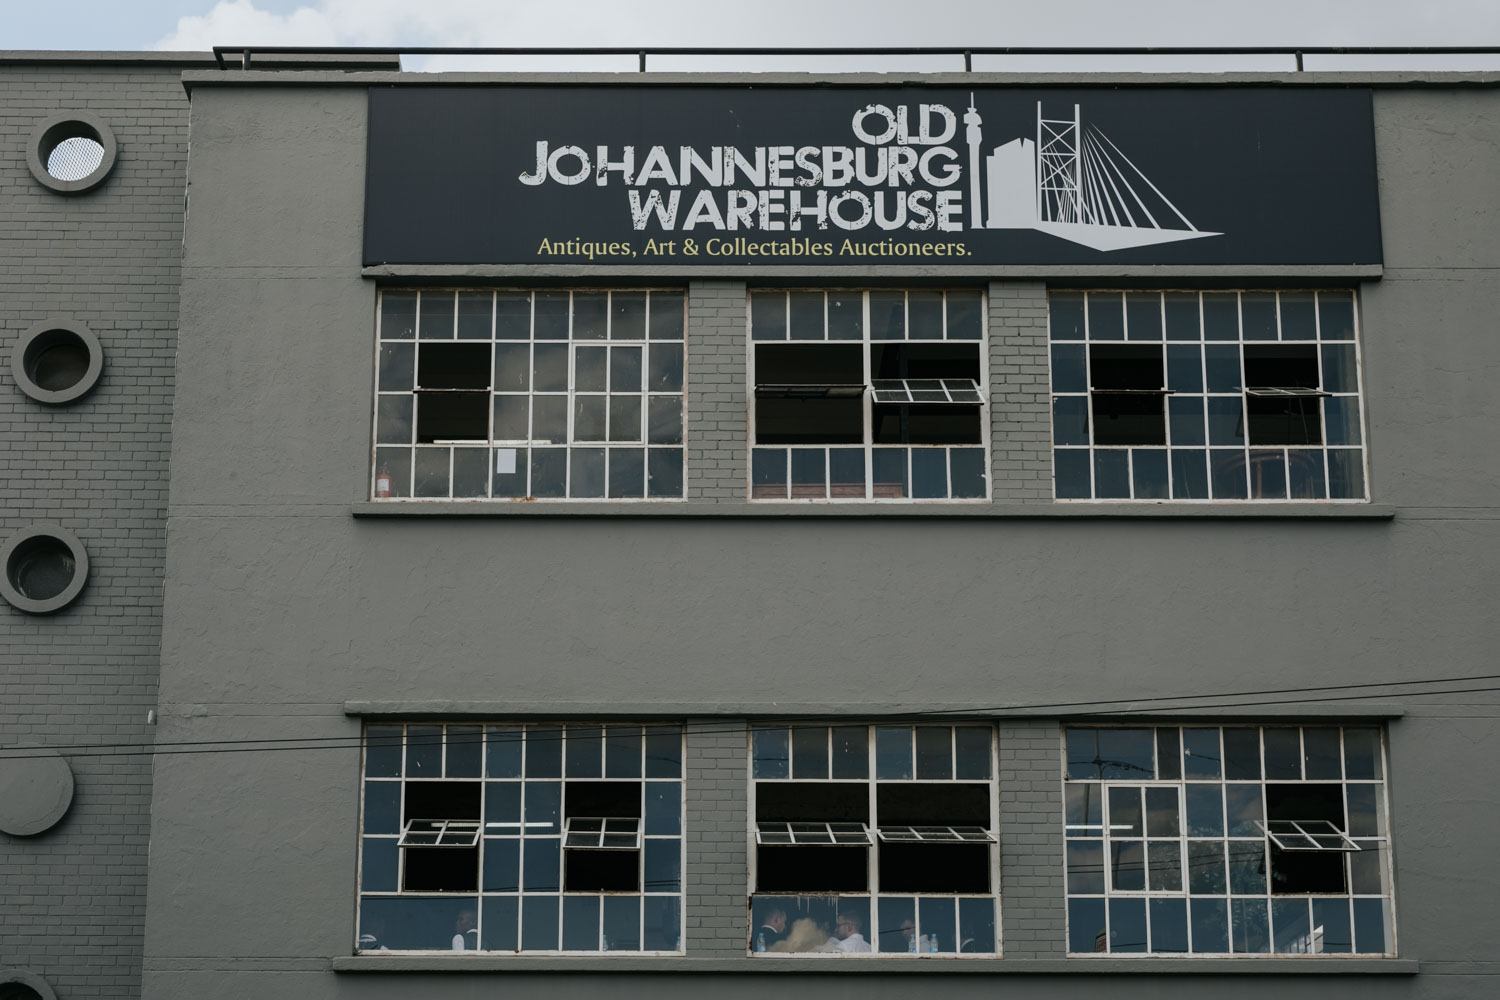 Old Johannesburg Warehouse City Wedding Venue